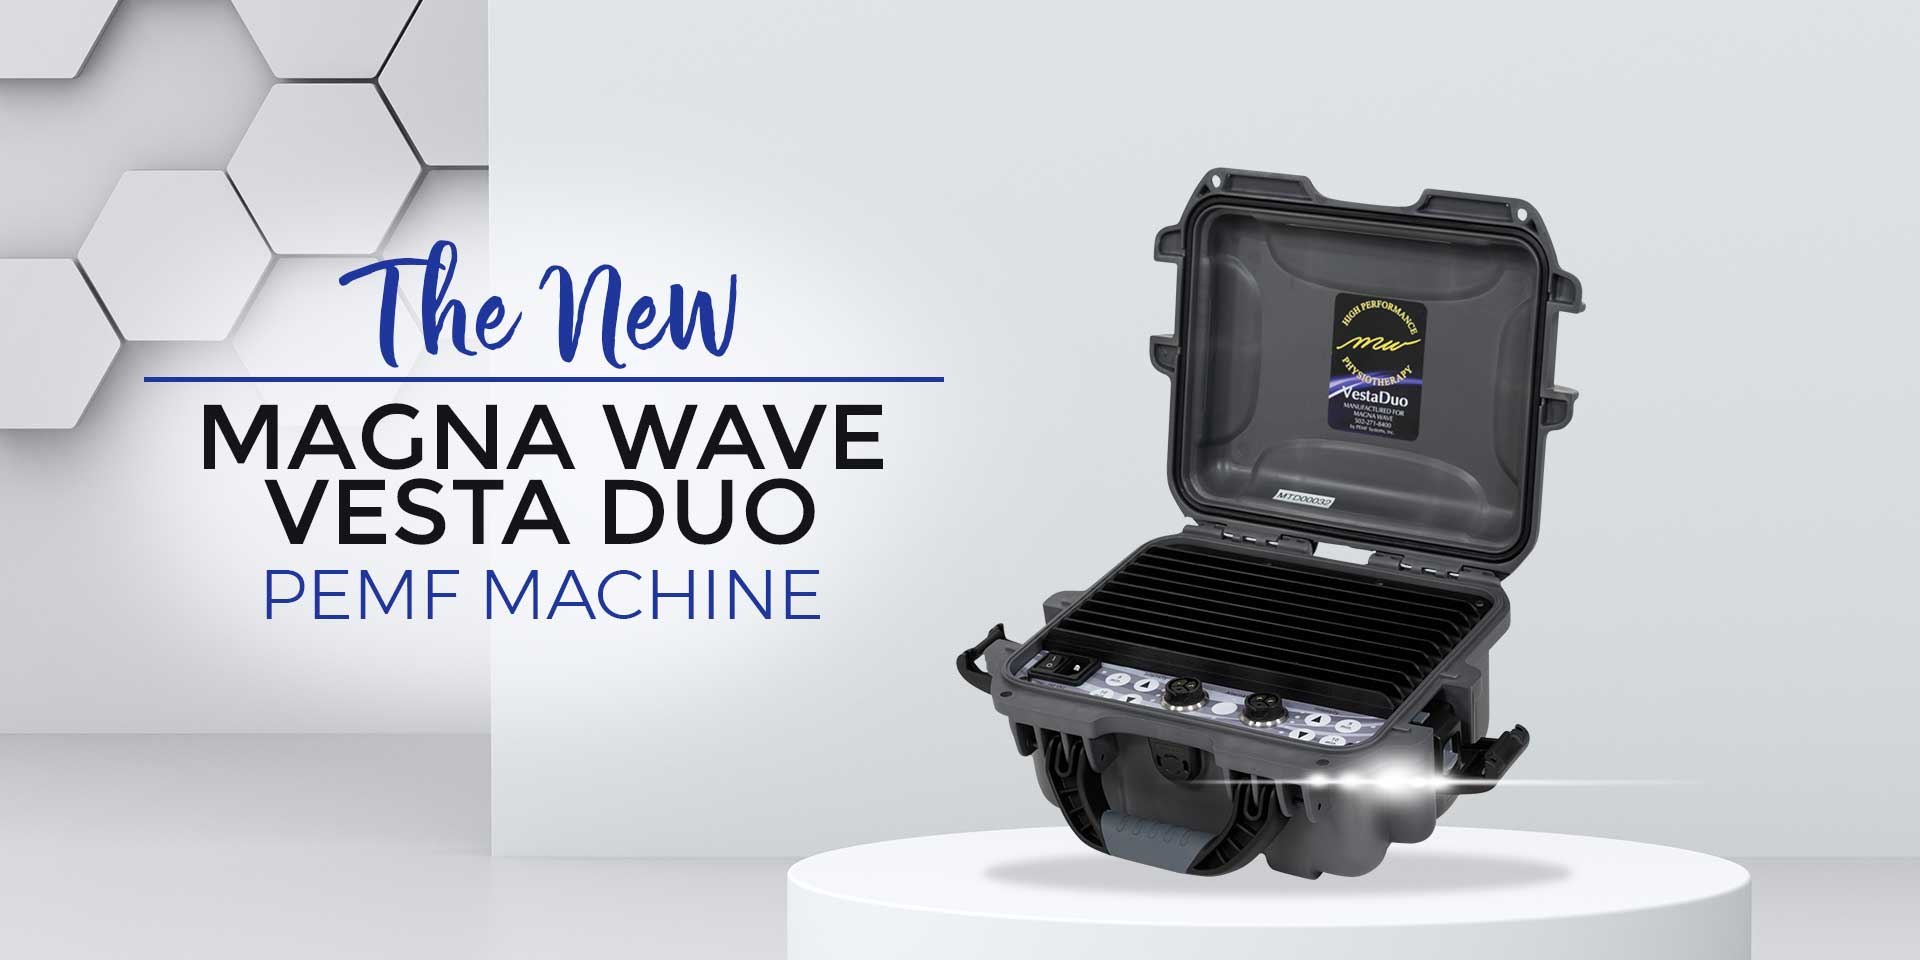 The NEW Magna Wave Vesta Duo PEMF Machine